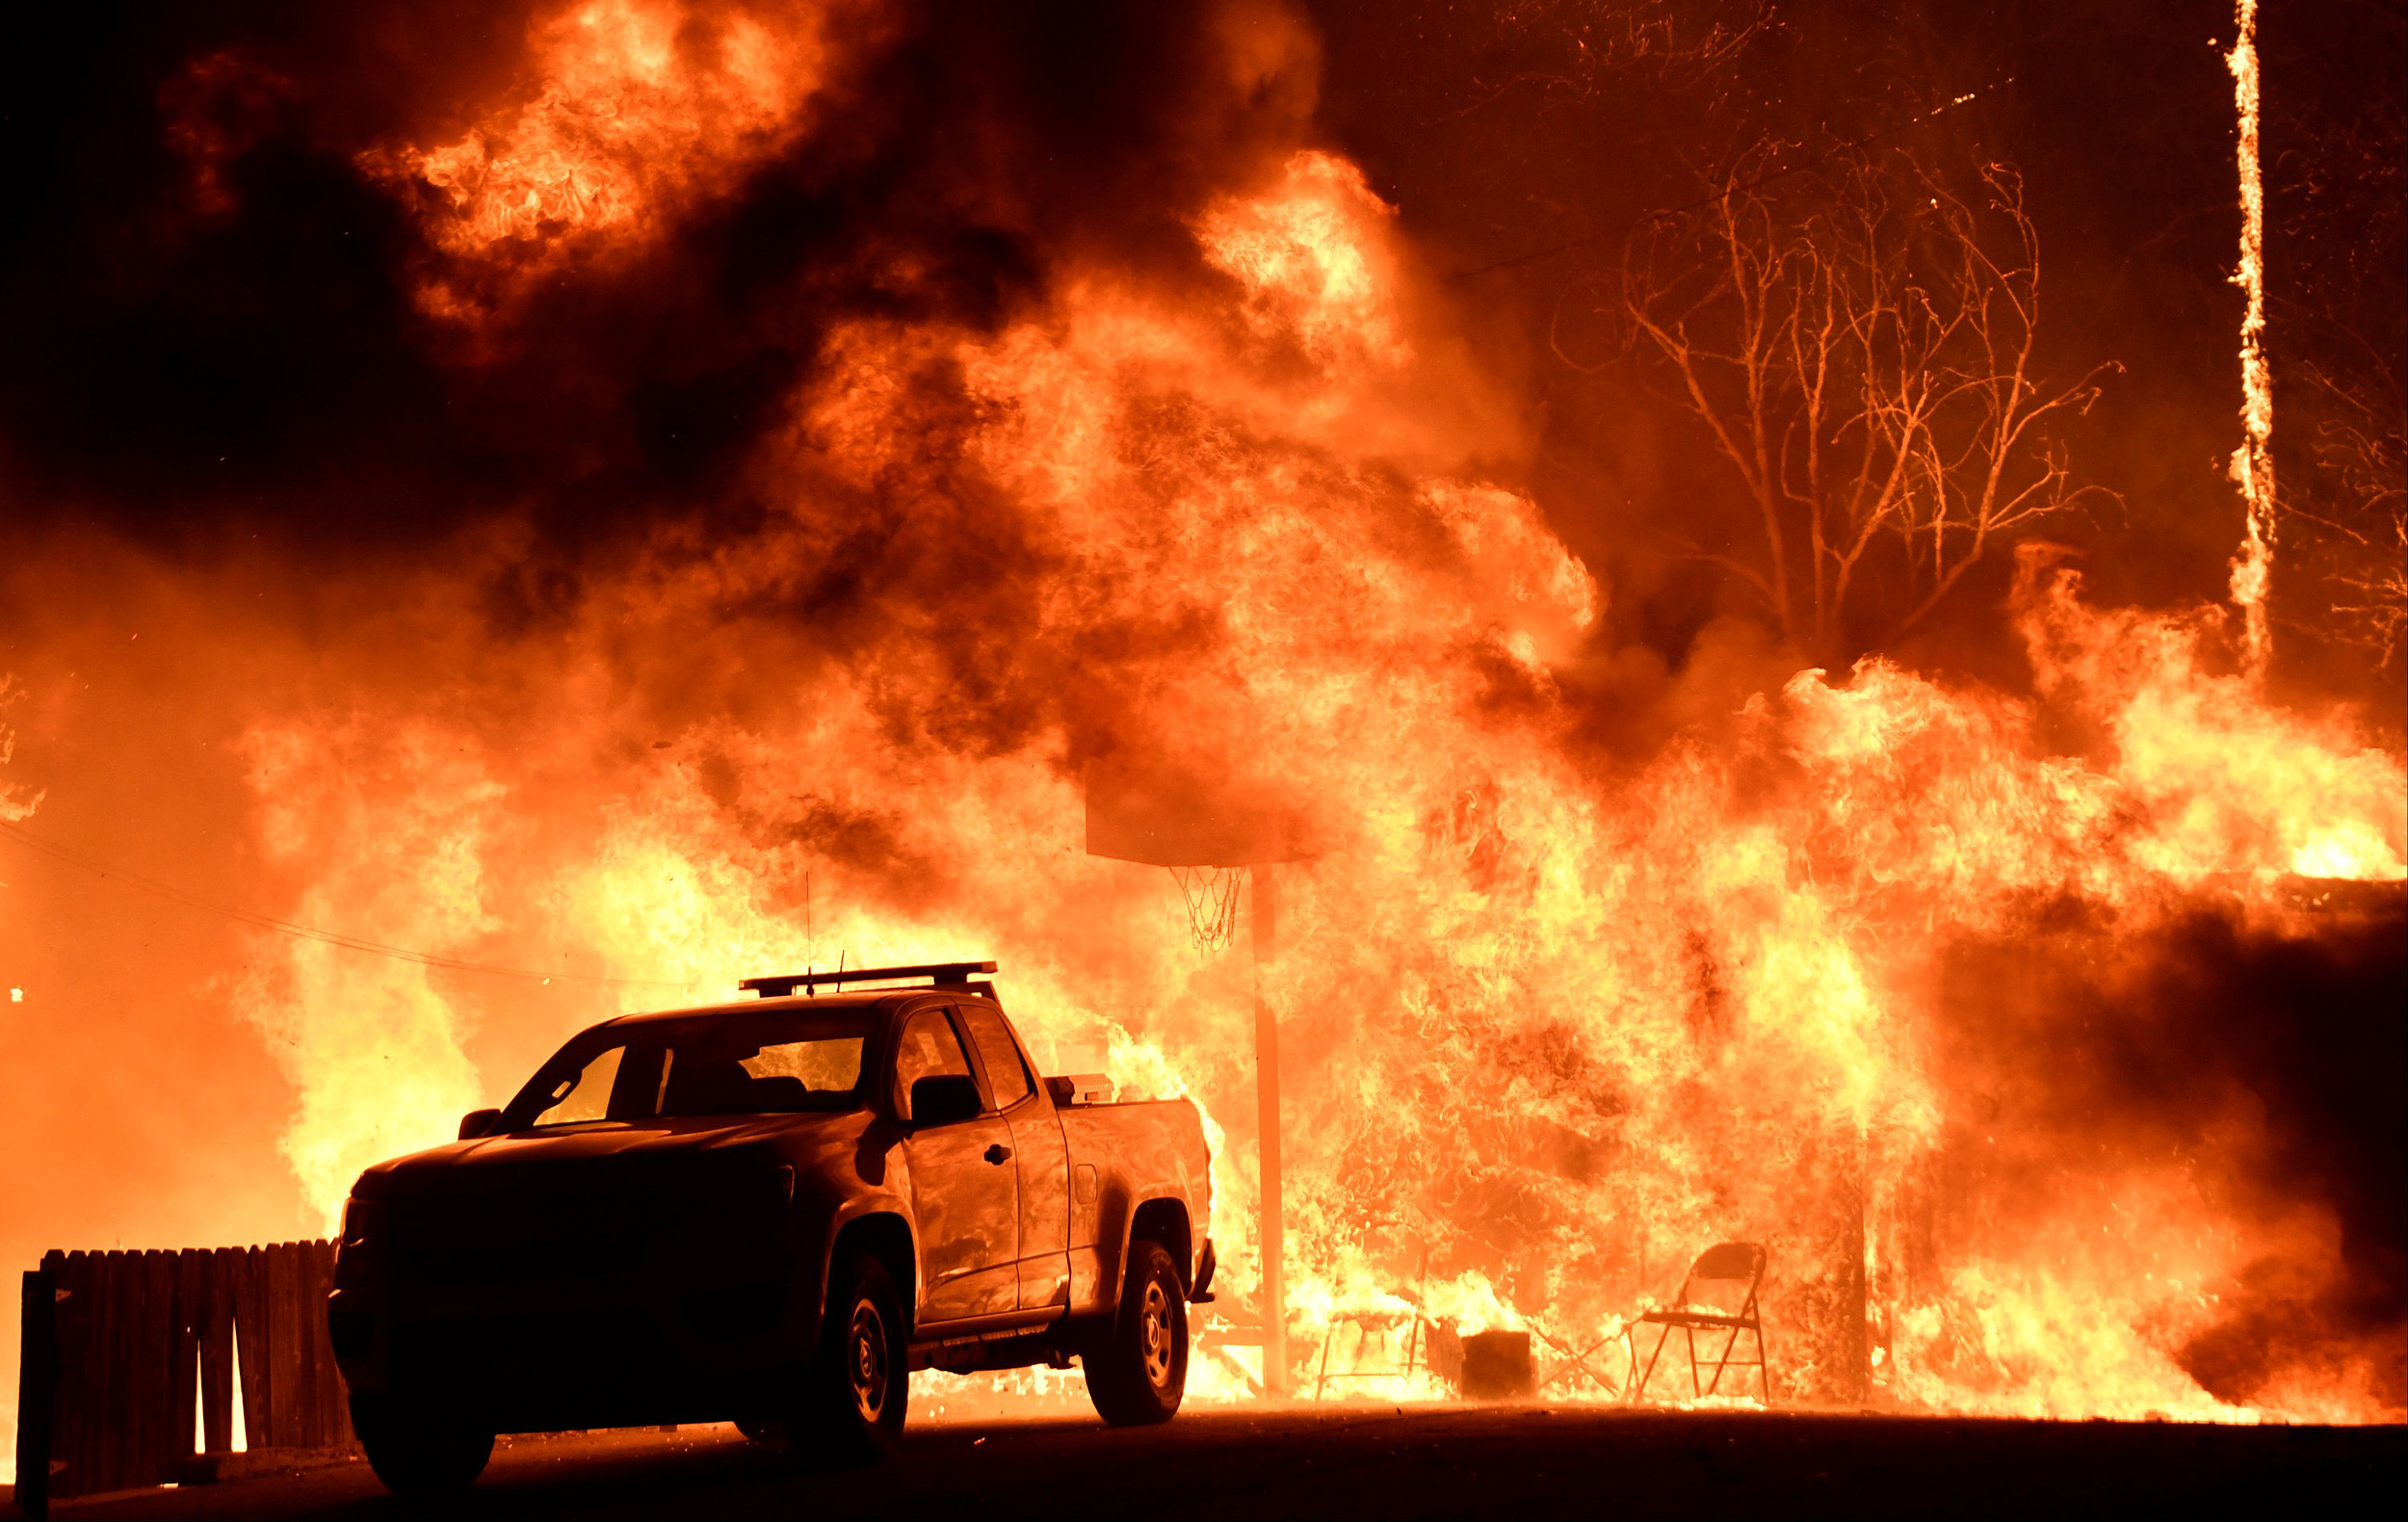 Image: Flames spread behind a vehicle from a Santa Ana wind-driven brush fire called the Thomas Fire in Santa Paula, California